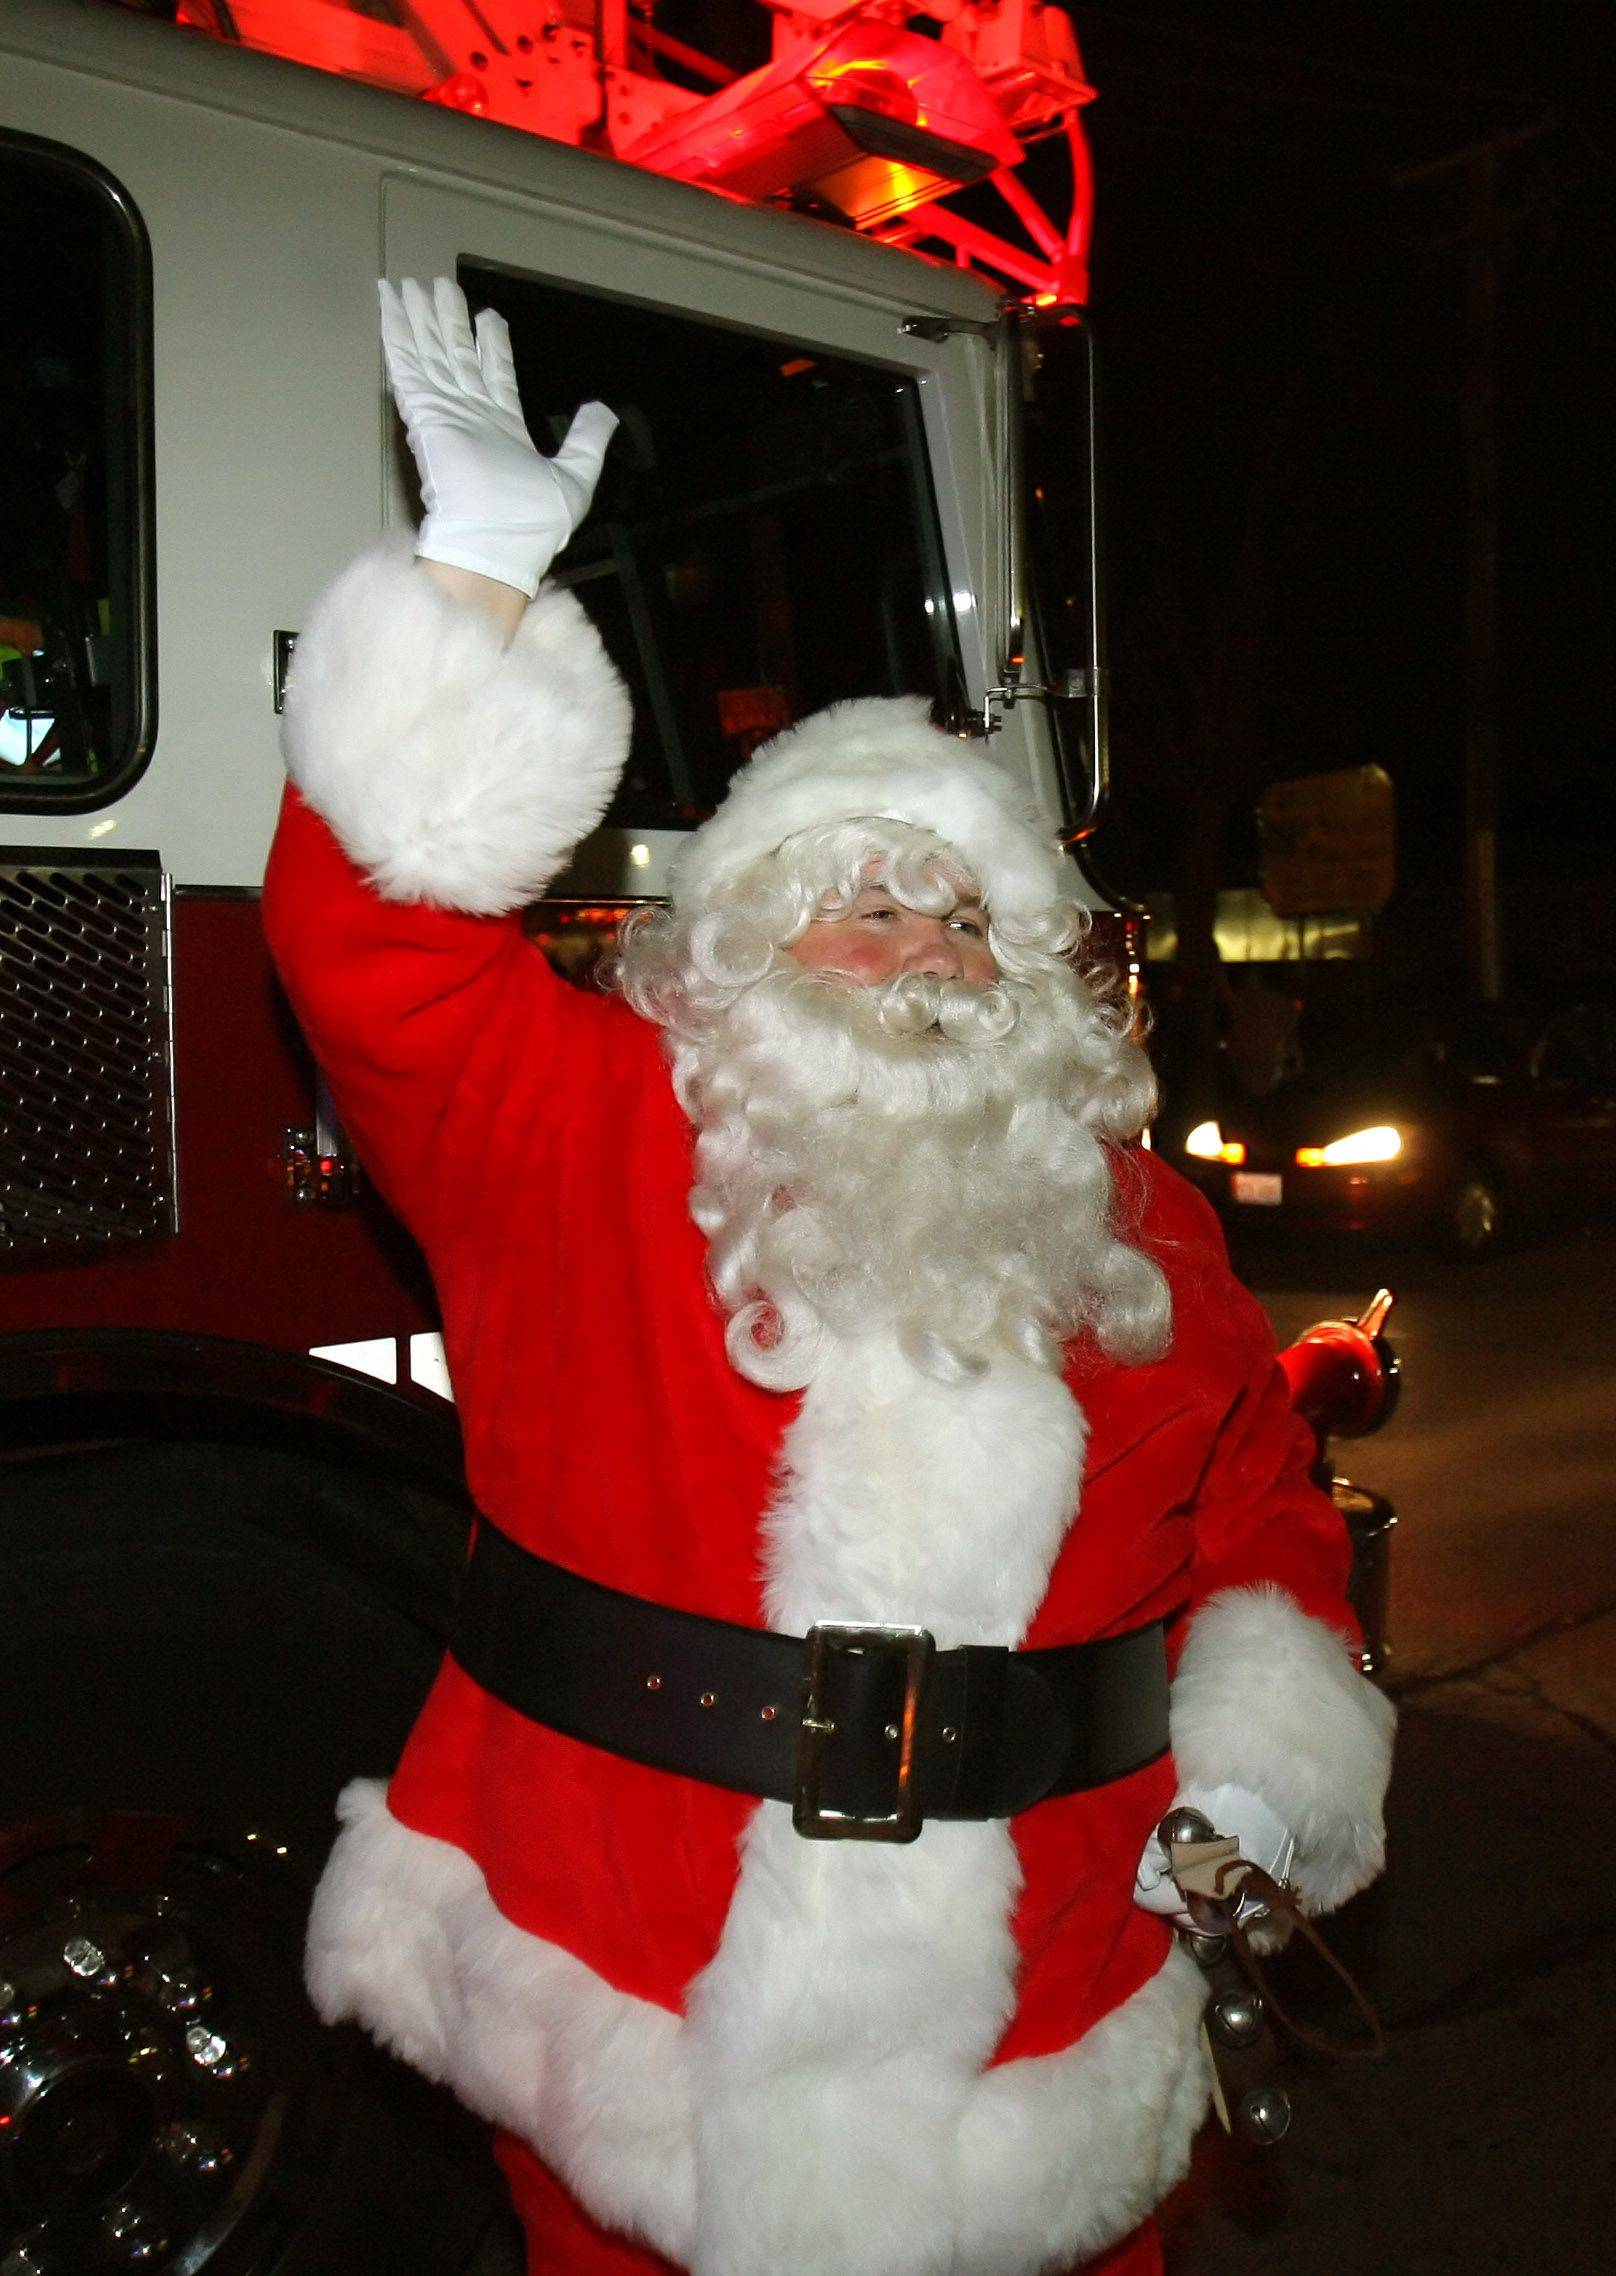 Santa waves to the crowd after arriving on a fire truck in downtown Grayslake Friday night.